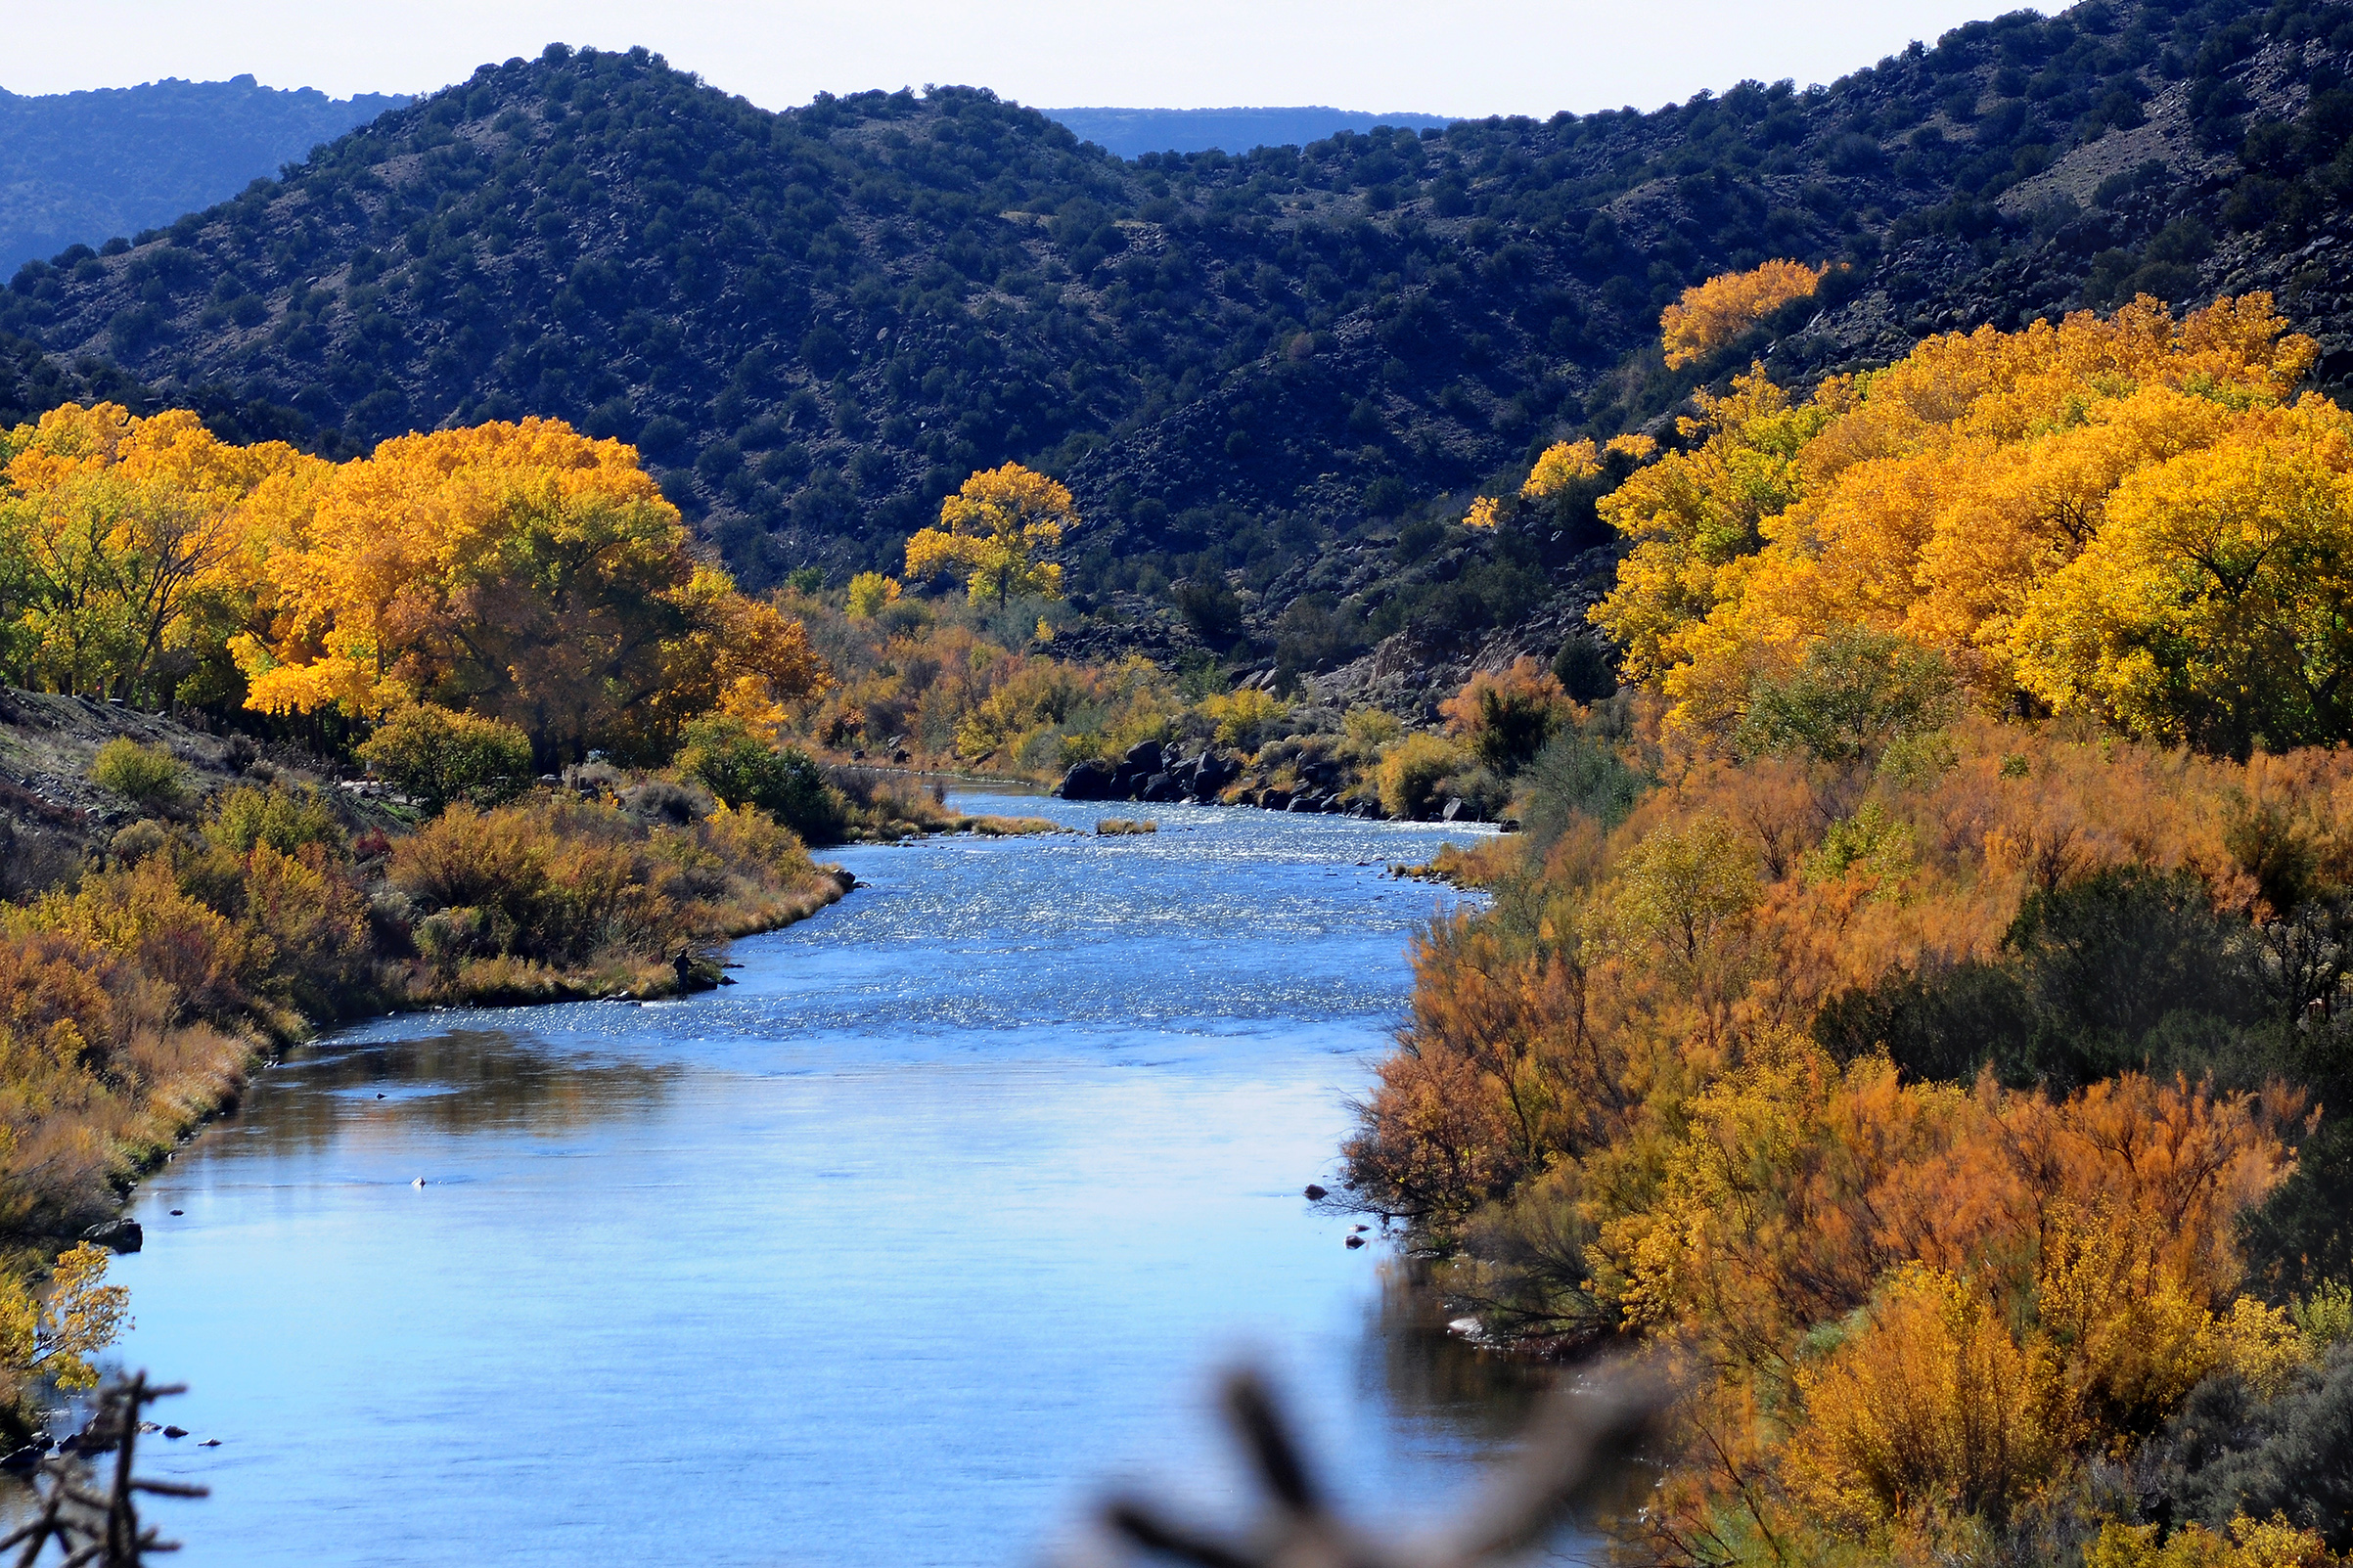 The Rio Grande River flows past cottonwood trees near Taos, New Mexico.